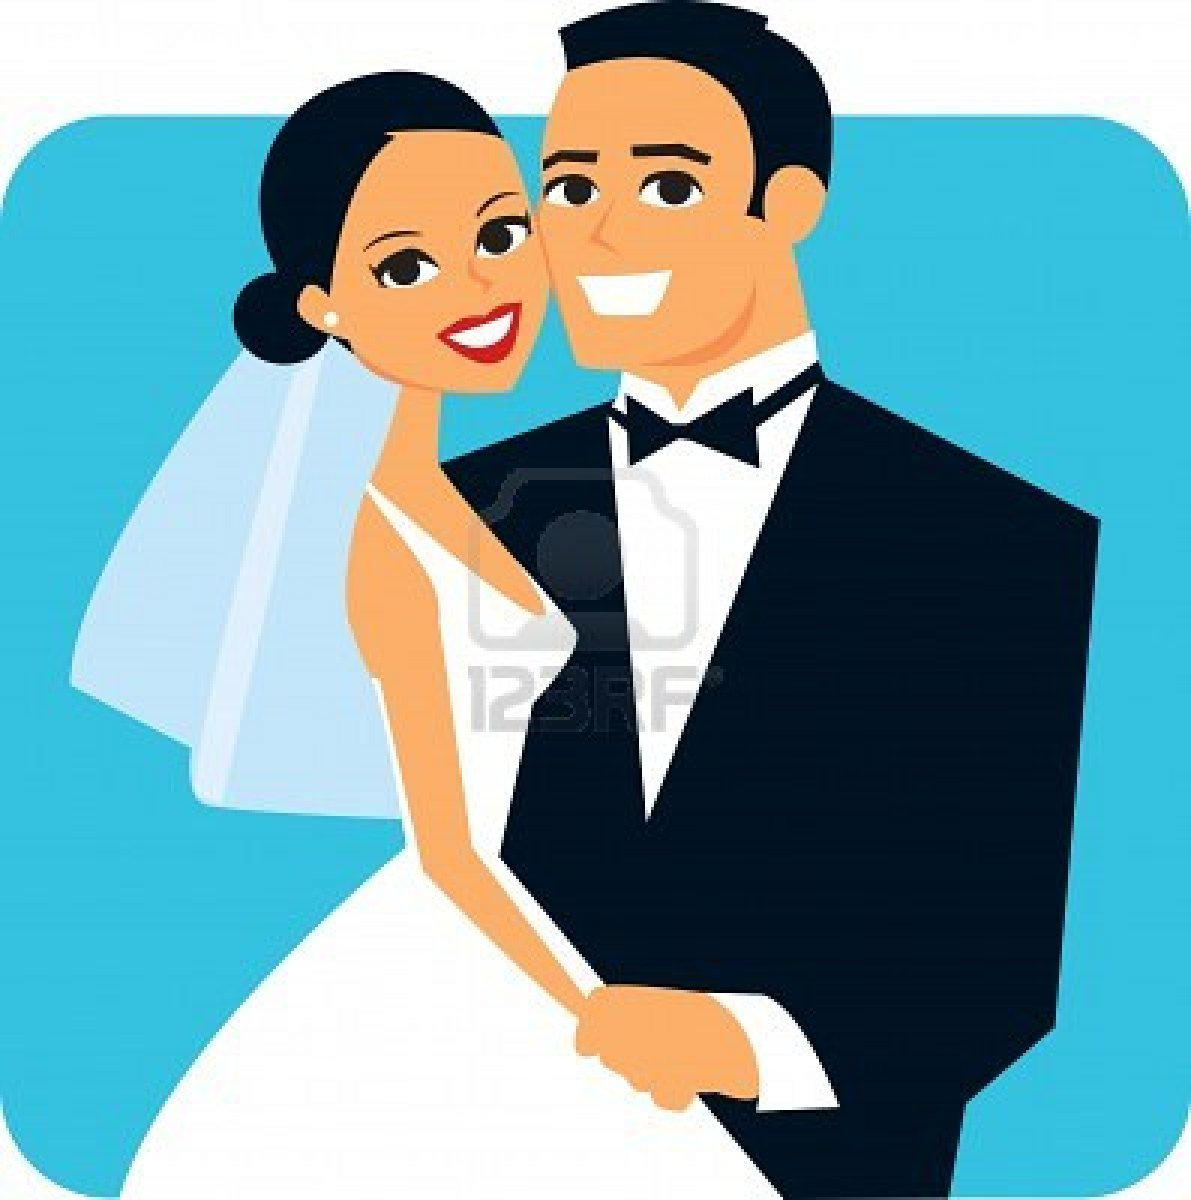 Cartoon Happy Wedding Couple Free Image